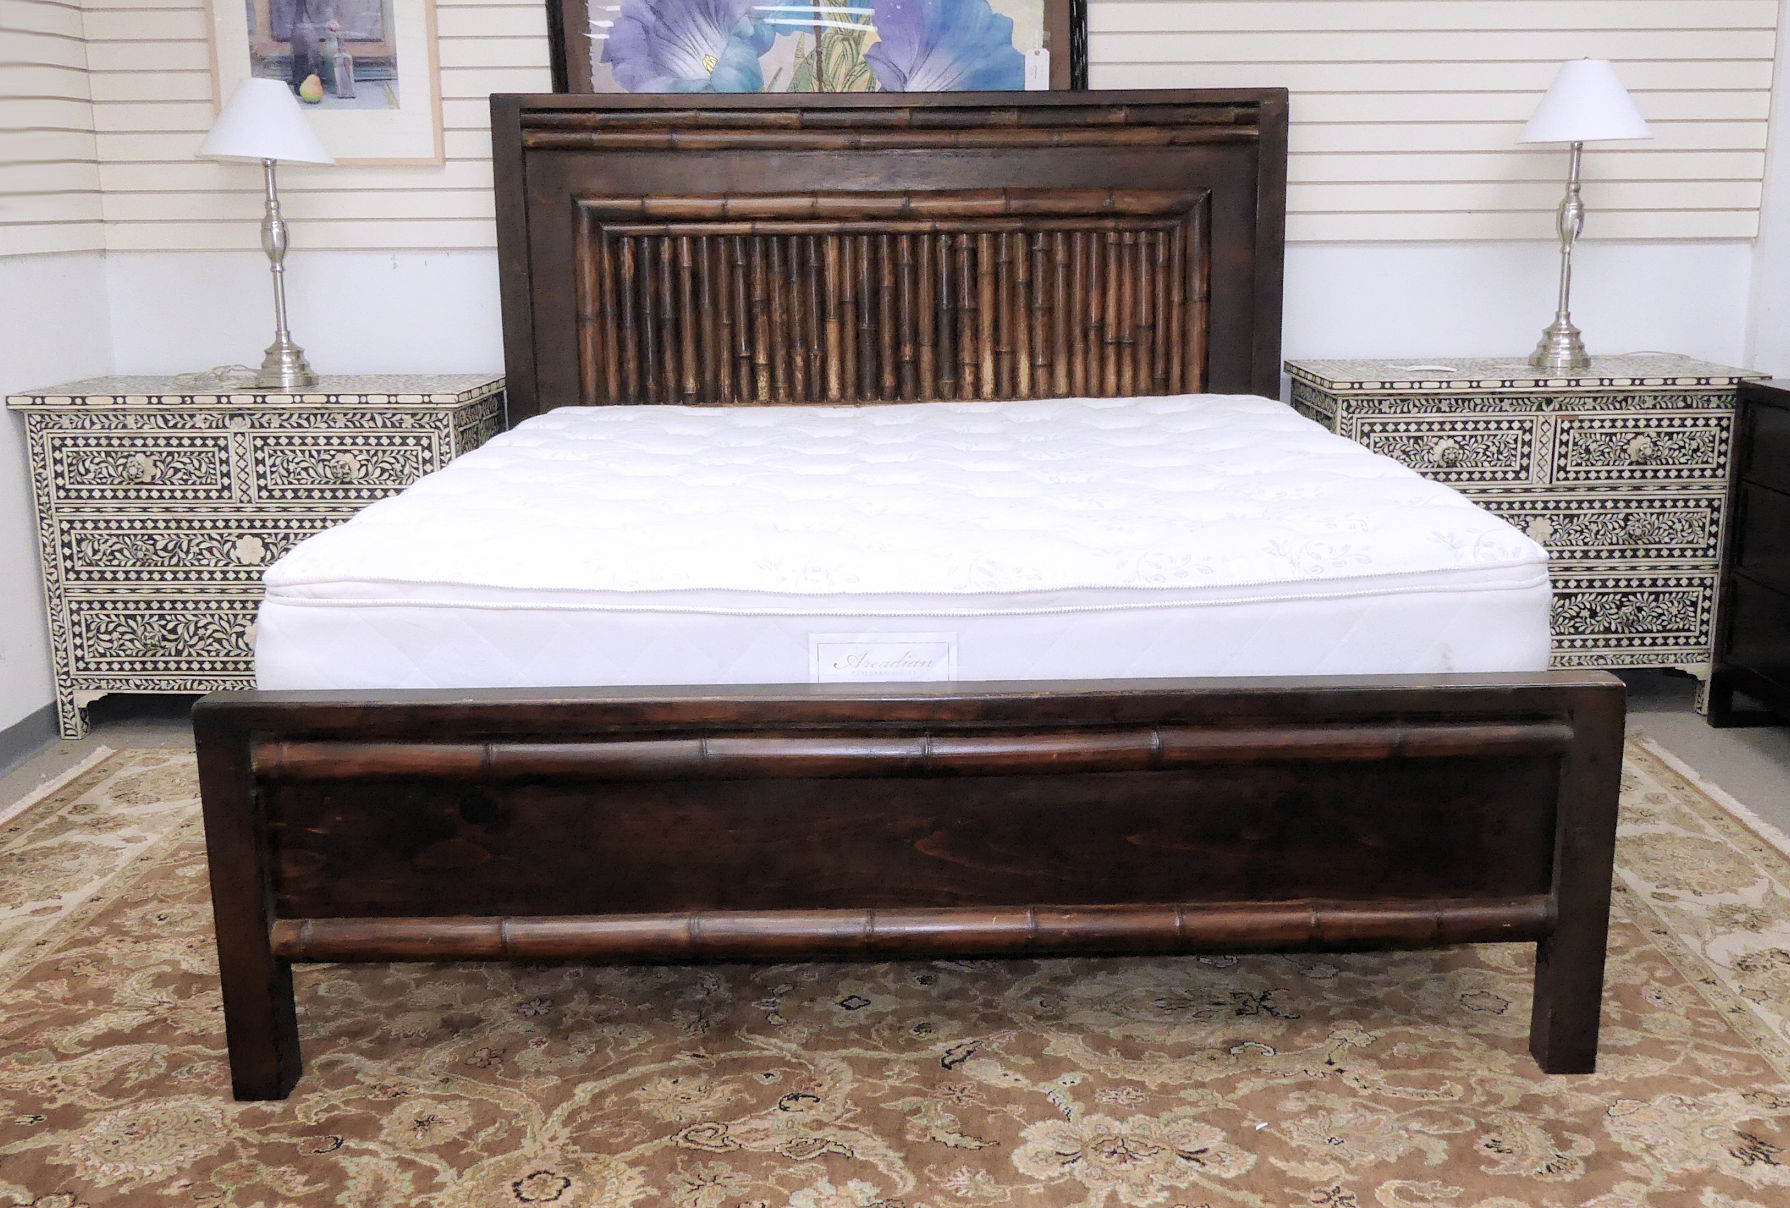 SOLD Bamboo & Wood Polynesian Style King Size Bed